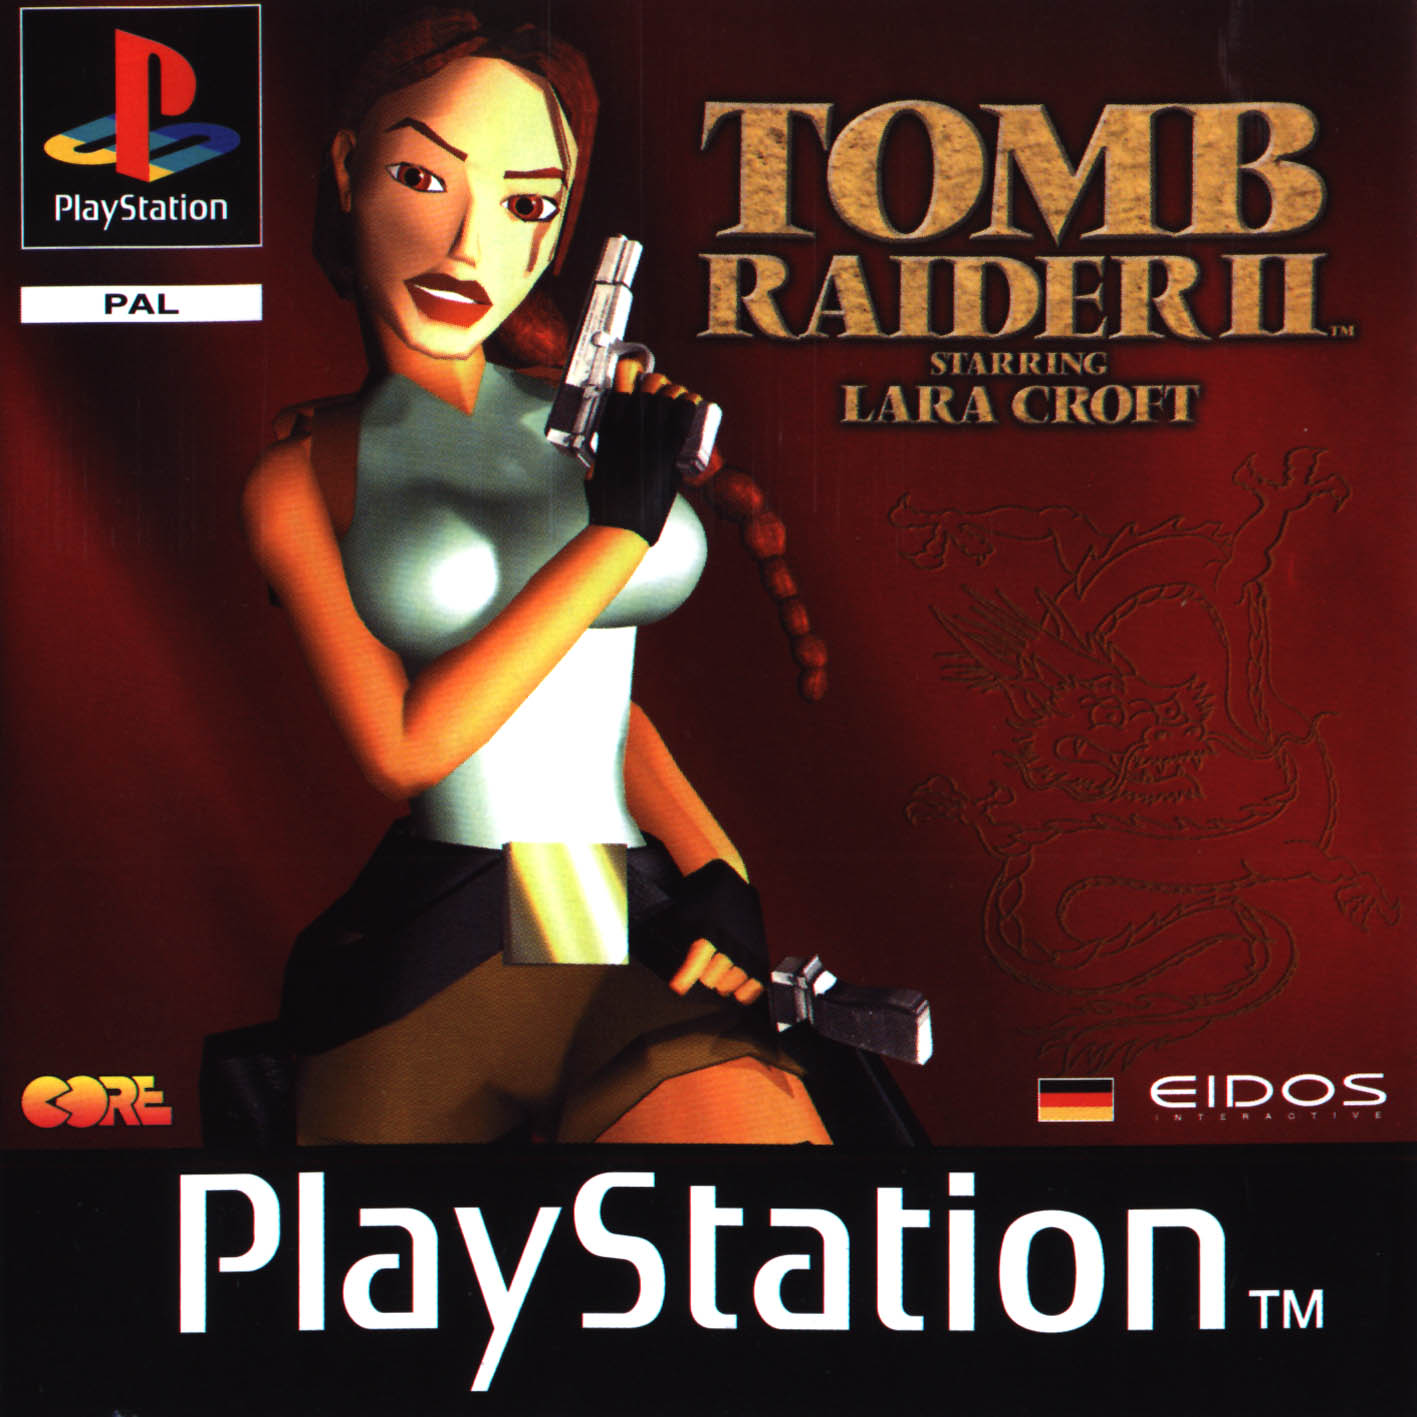 tomb raider 2 playstation Why Uncharted 4 Devs Asked One Sexist Focus Tester To Leave